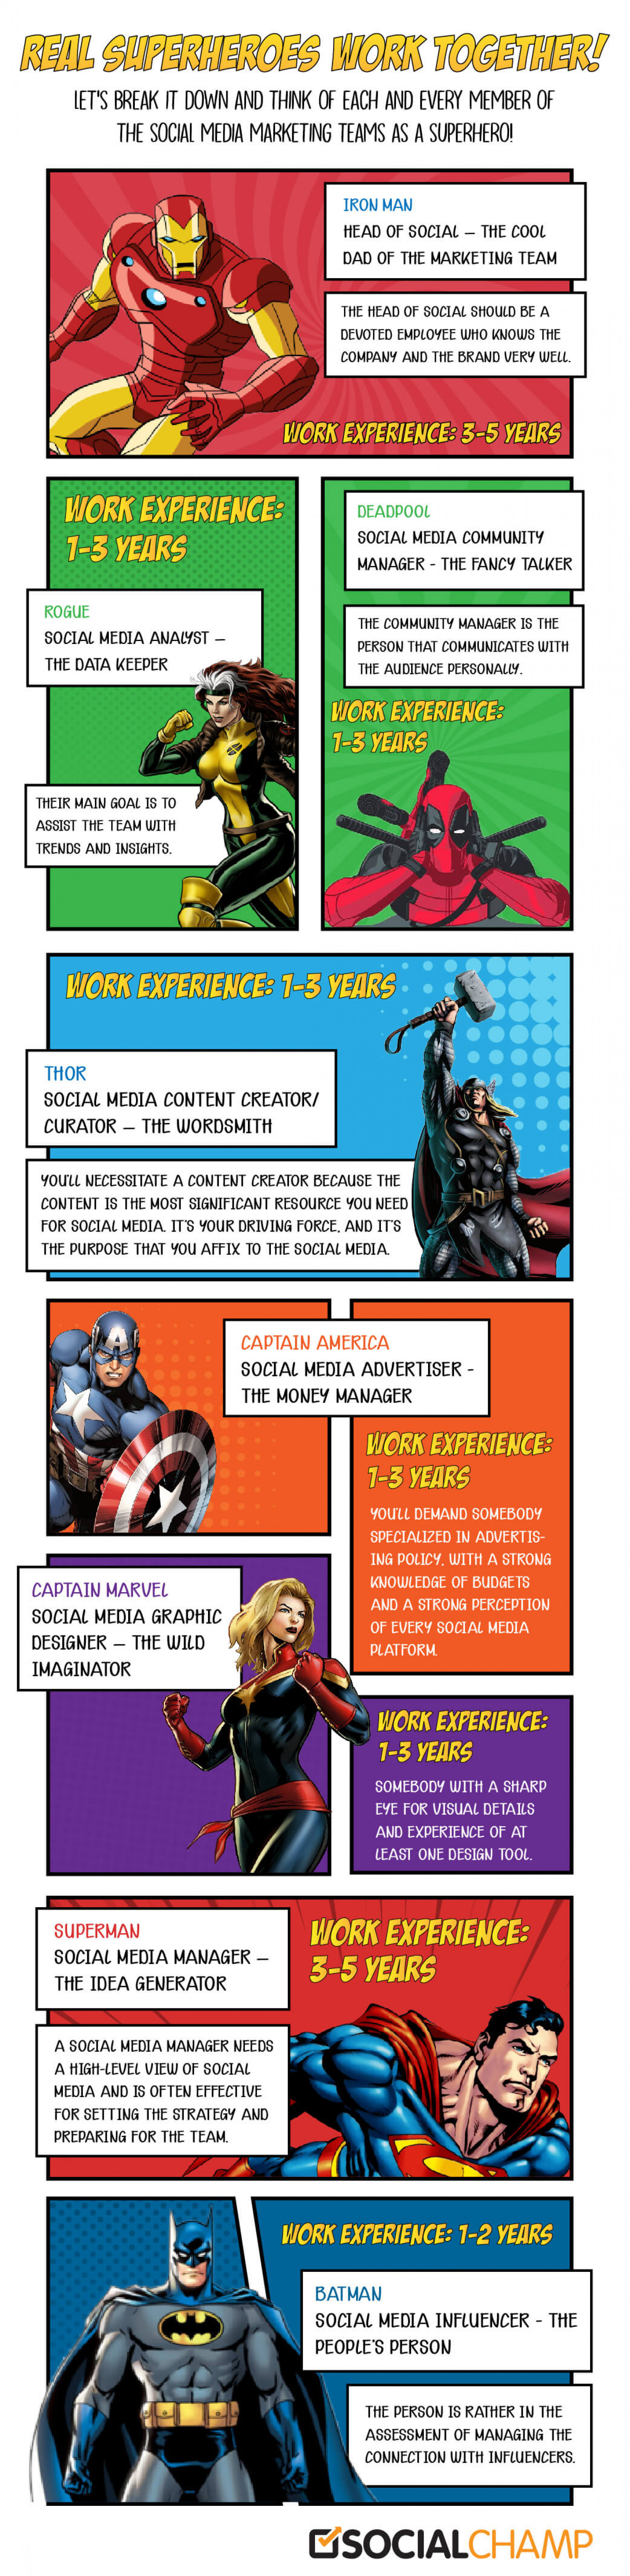 Social Media Team Infographic Featuring Super Heroes Infographic